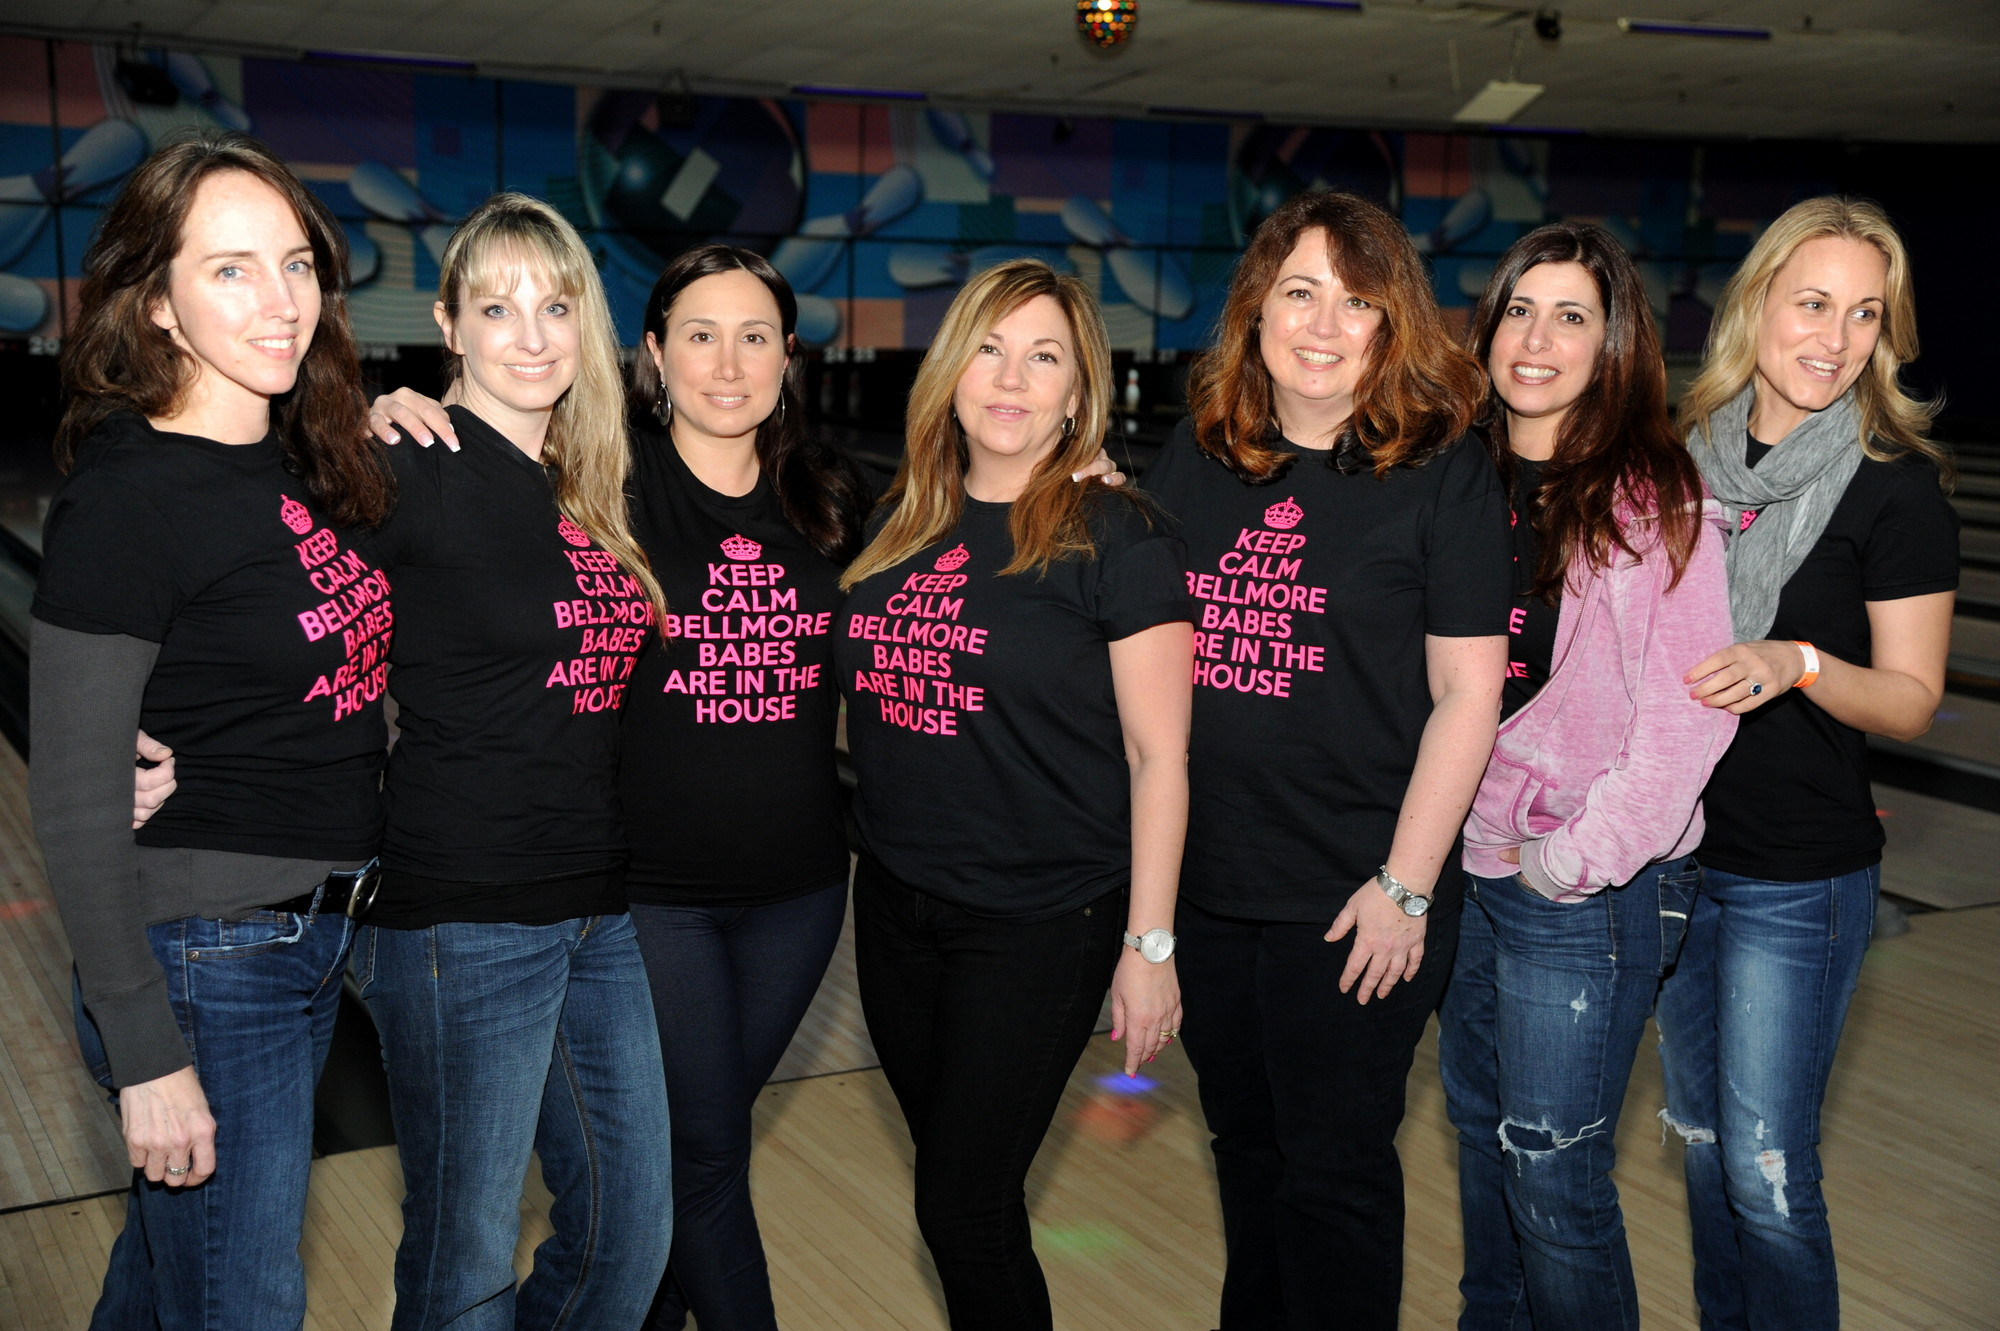 Bellmore moms Jodi Bergman, Barbara Schneider, Carmela Ciminera, Lisa DellaCroce, Christine Fischetti, Maryann Castaro and Melissa Mannetta made shirts for the friendly competition.